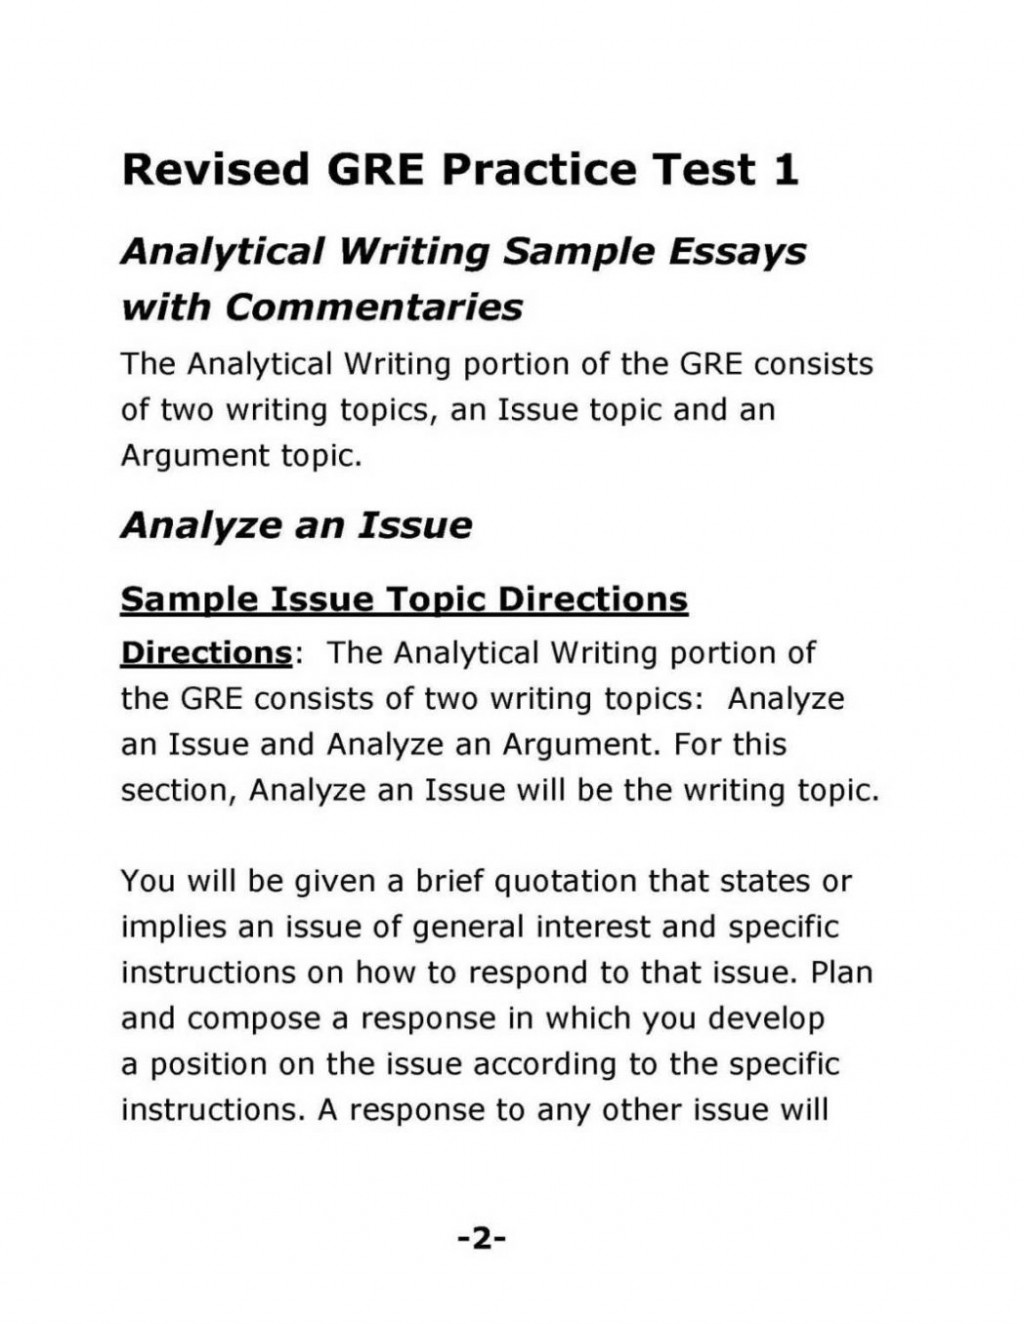 009 Argumentative Analysis Essay Topics Good Persuasive For Gre Arguments Sample Test Papers With Soluti Tips Pdf 1048x1356 Unusual Argument Examples Questions Analytical Writing Samples Large